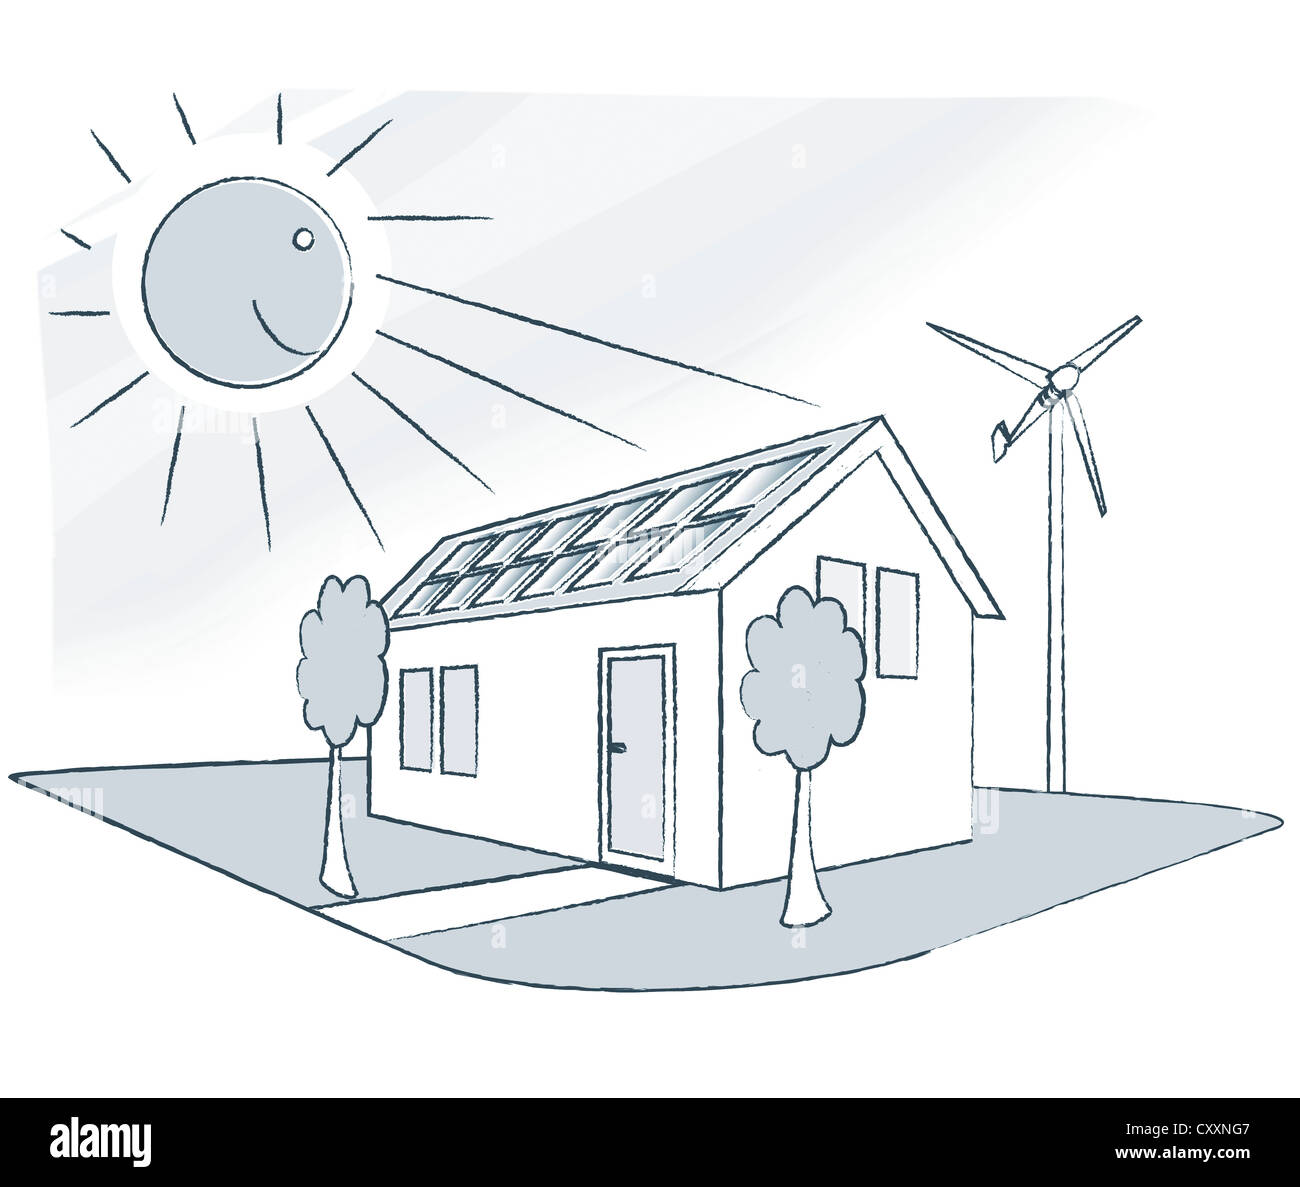 Houses Wind Energy Diagram Circuit Wiring And Hub How Solar Panels Work House With A Small Turbine Illustration Stock Rh Alamy Com Of